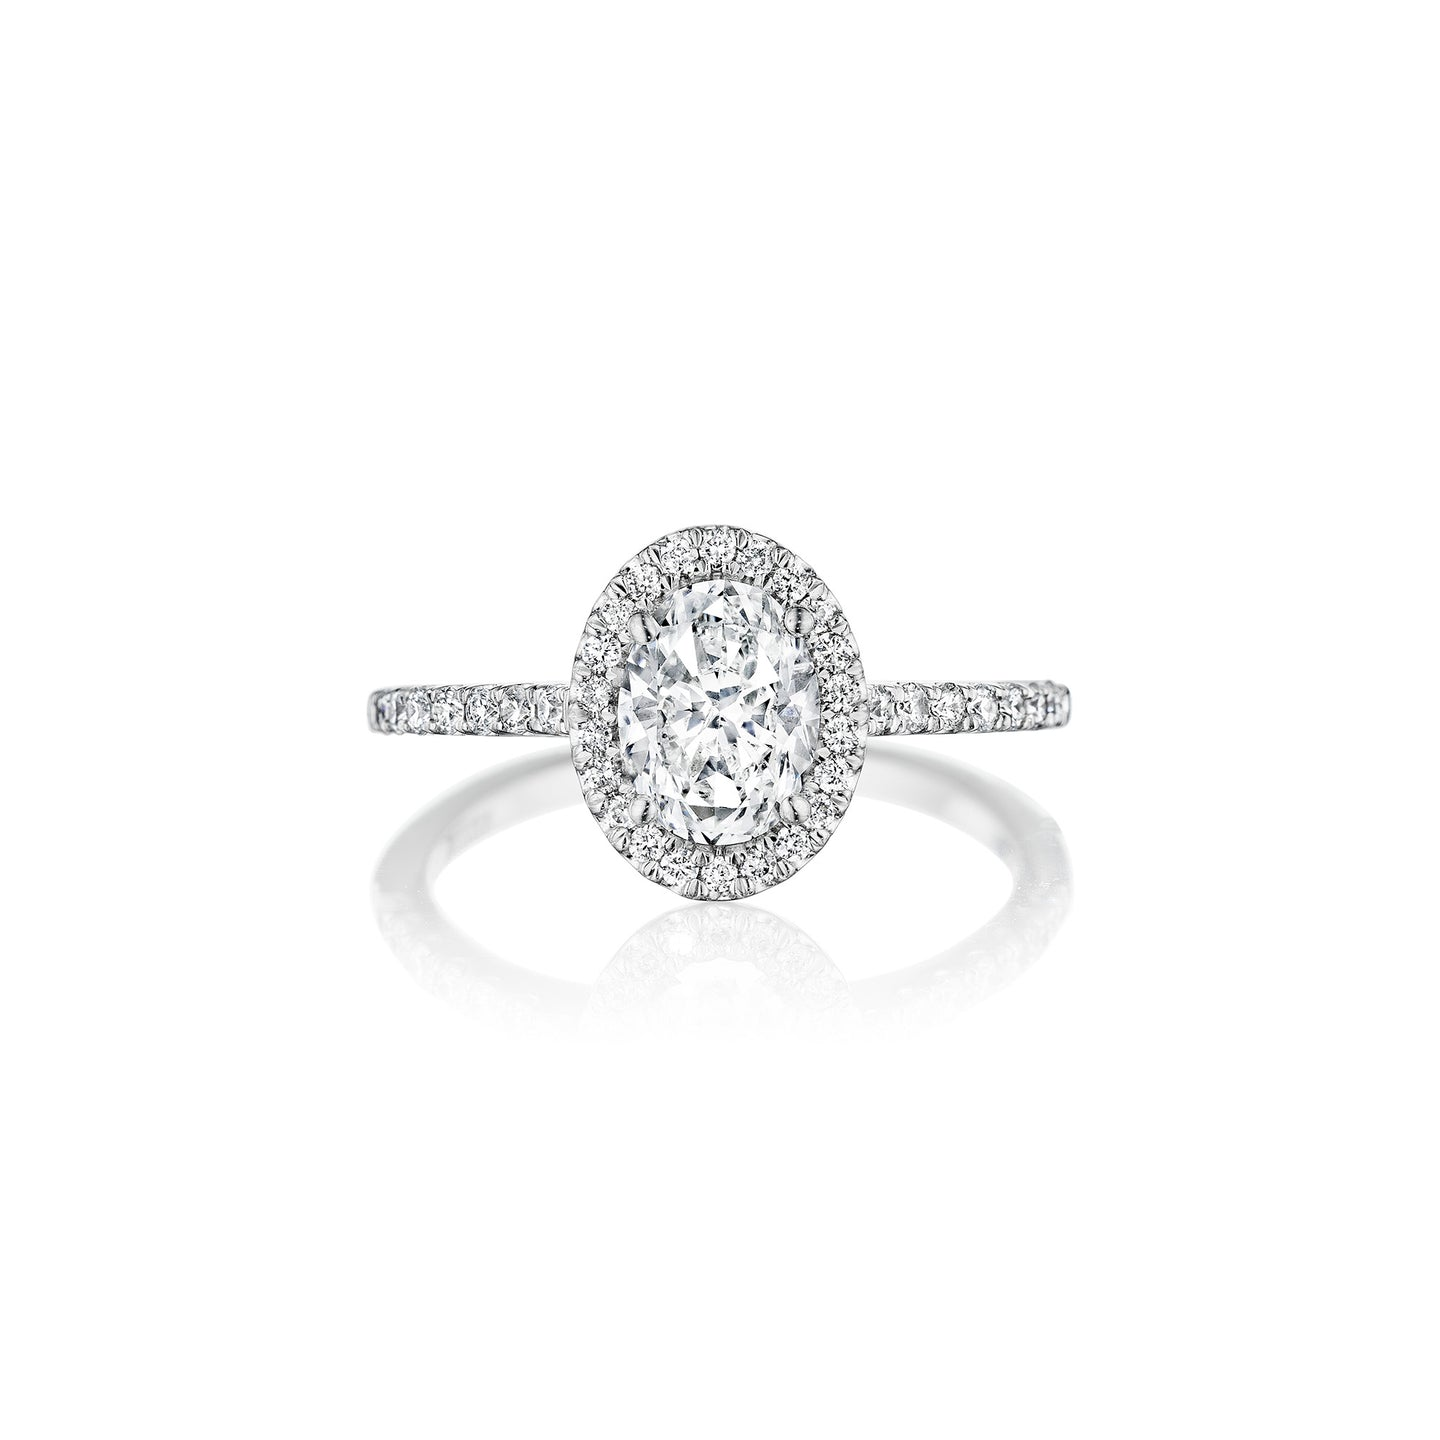 Fink's Exclusive Platinum Oval Diamond Halo Engagement Ring